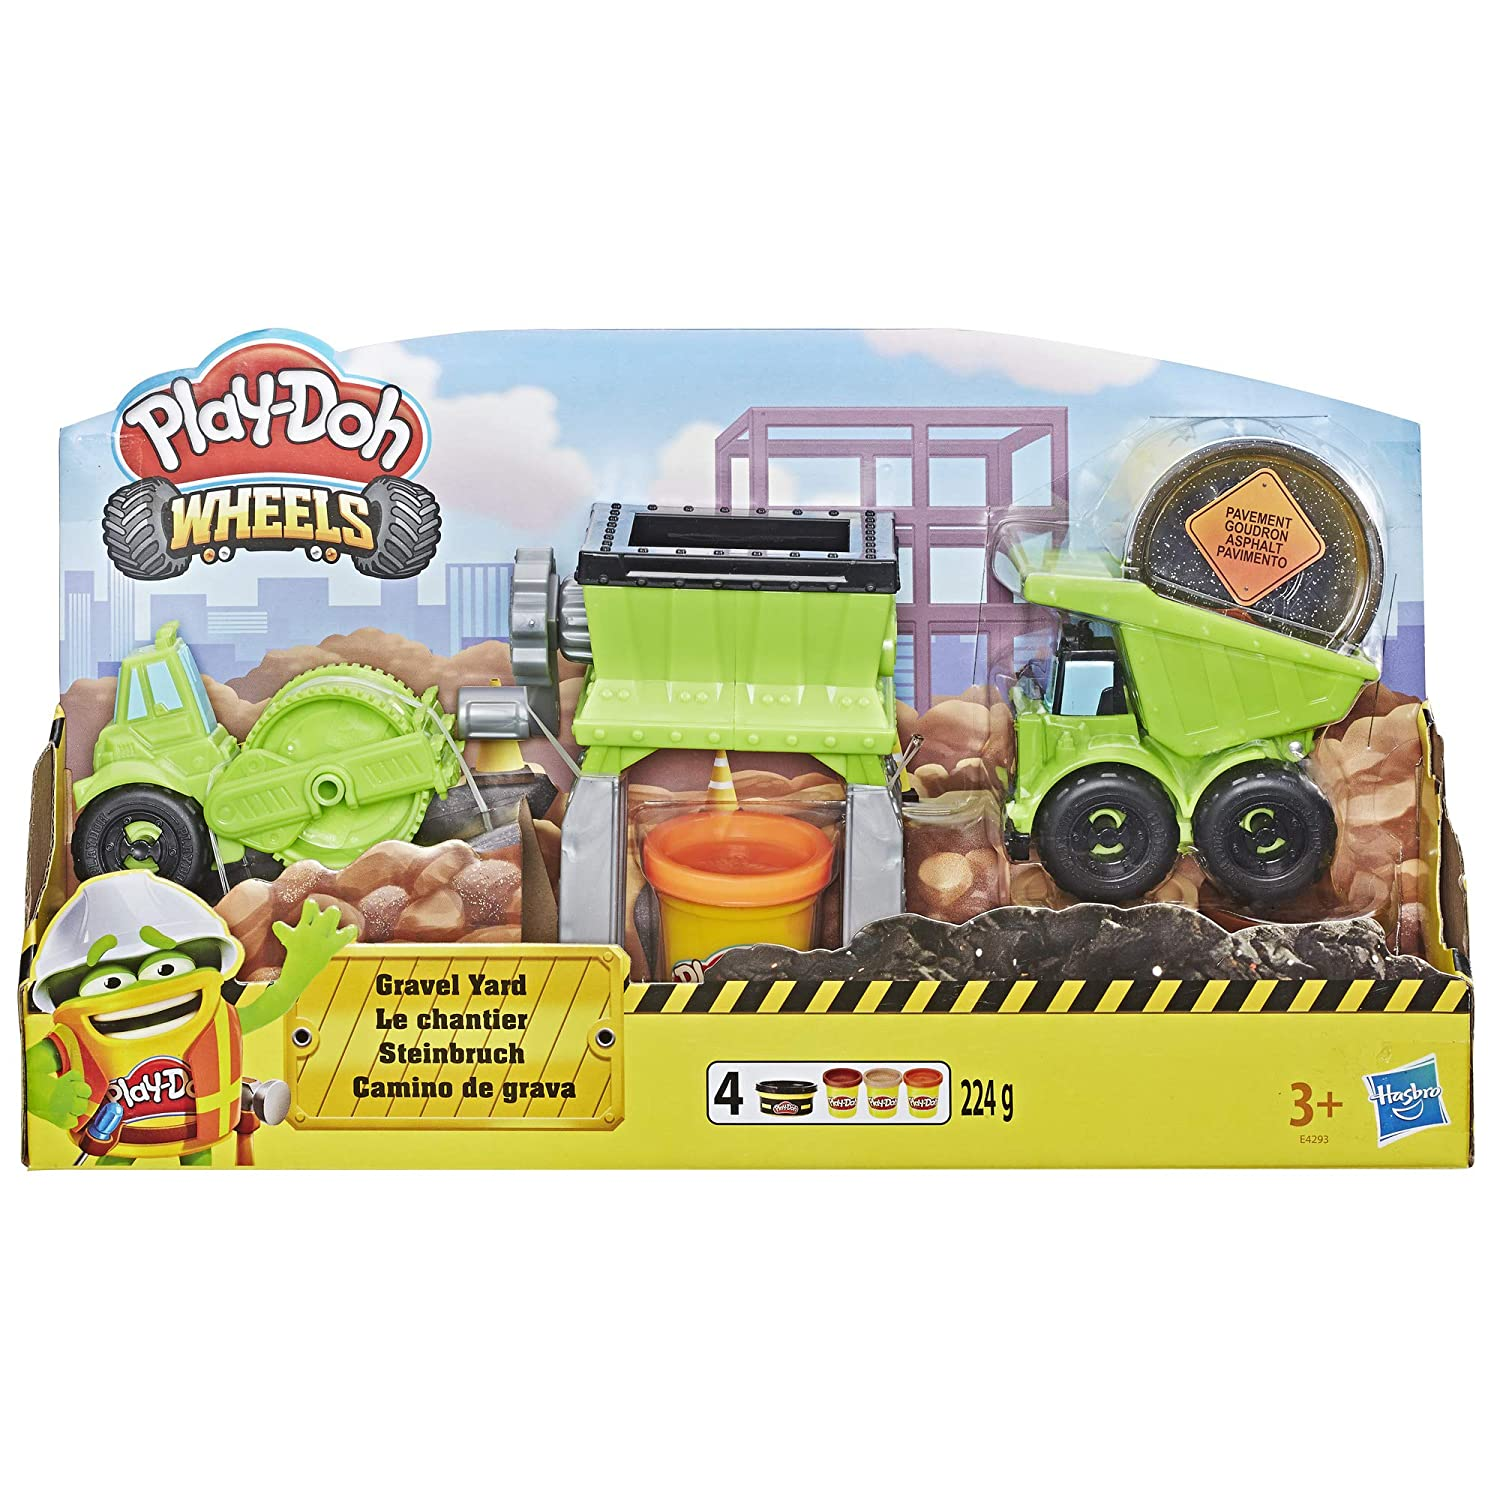 Amazon.com: Play-Doh Wheels Gravel Yd Construction Toy with ...